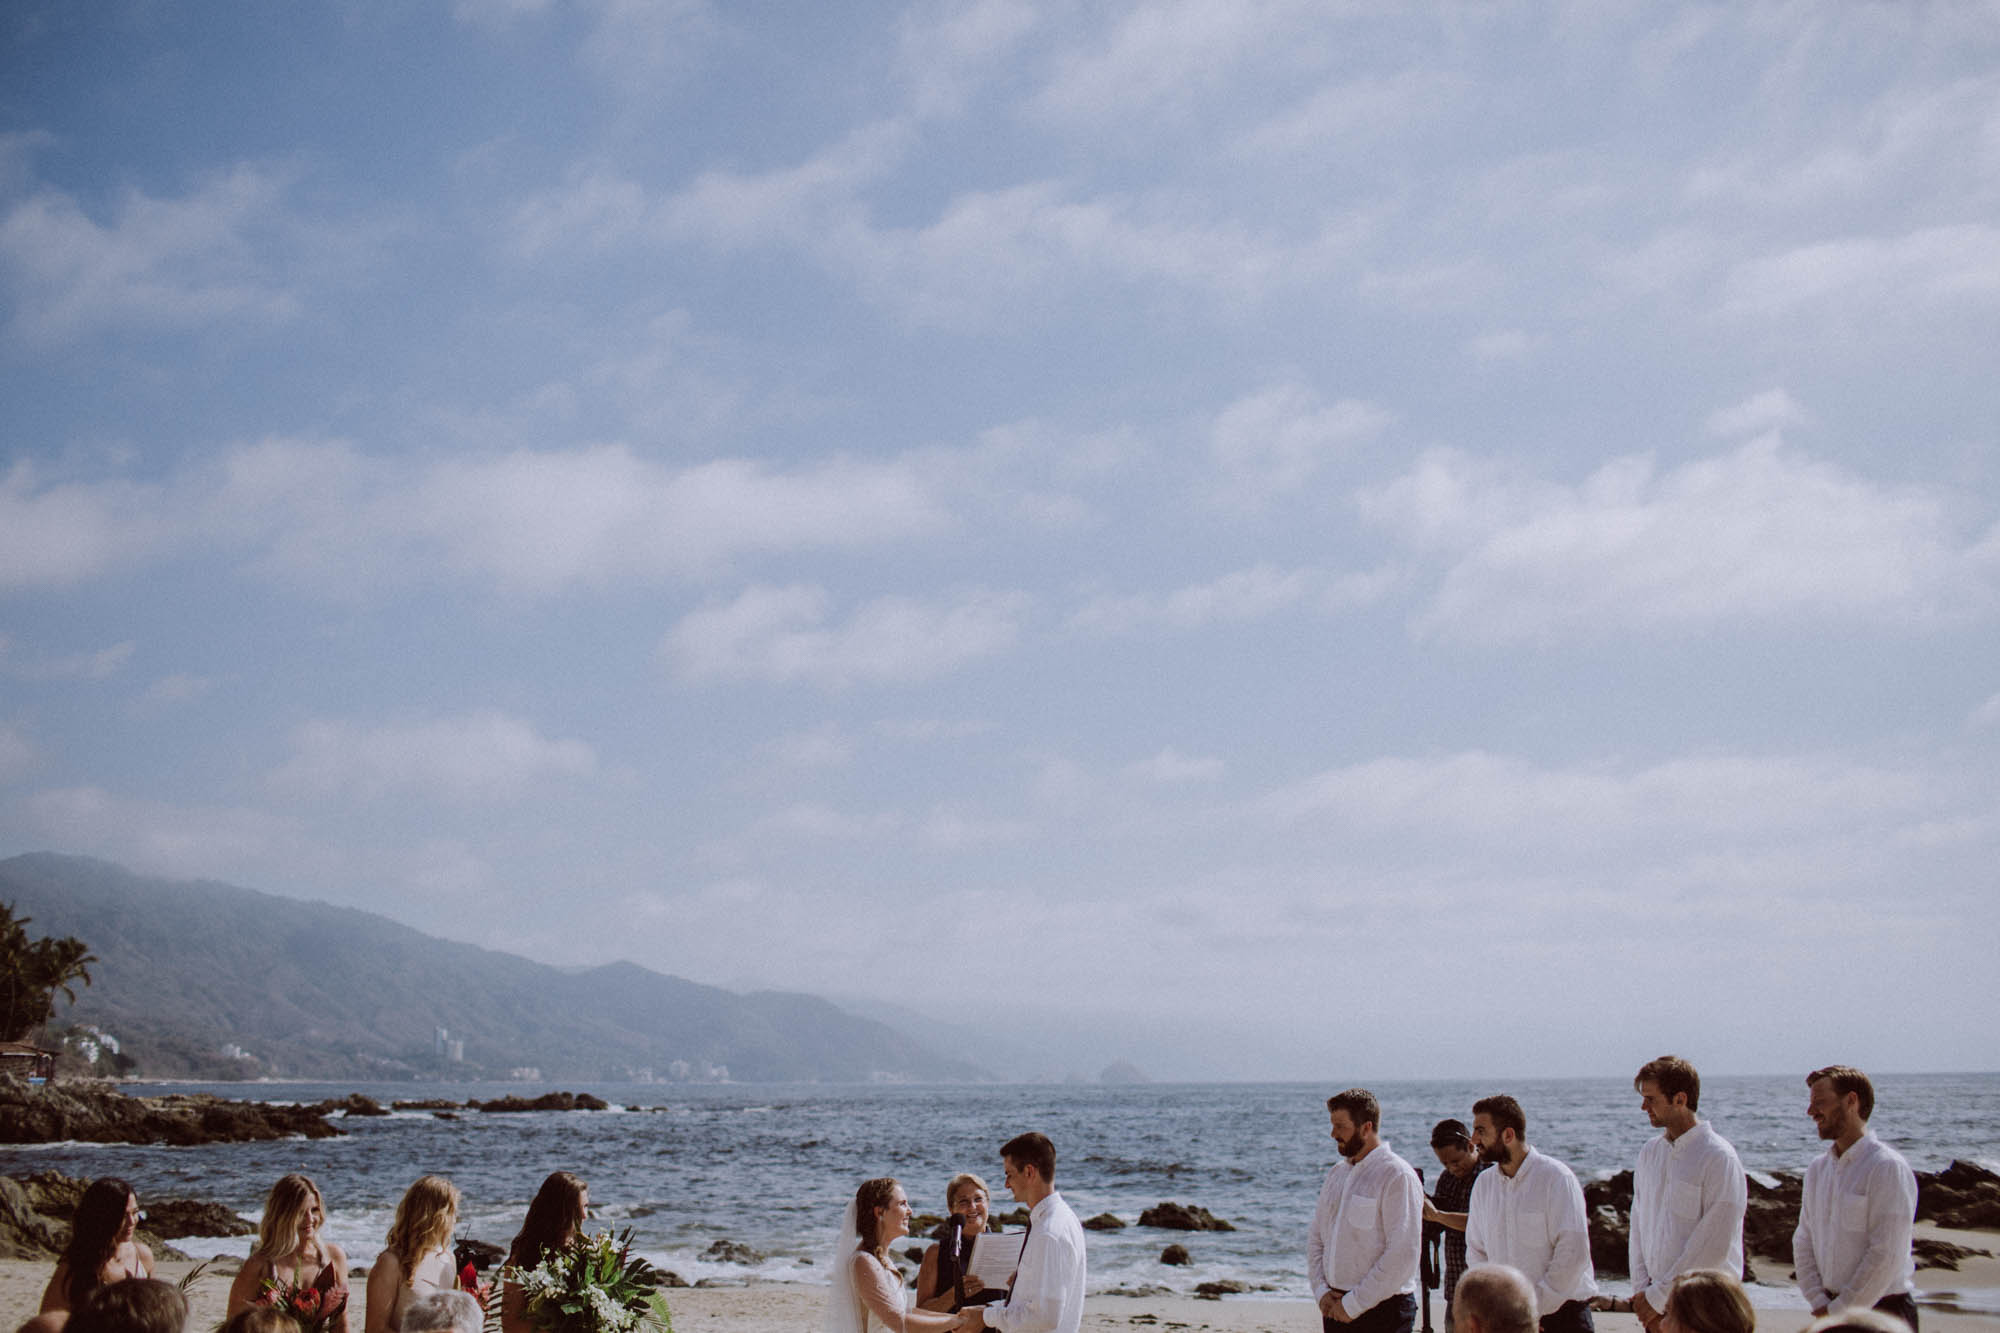 c_m_mexicowedding_destinationphotographer-48.jpg